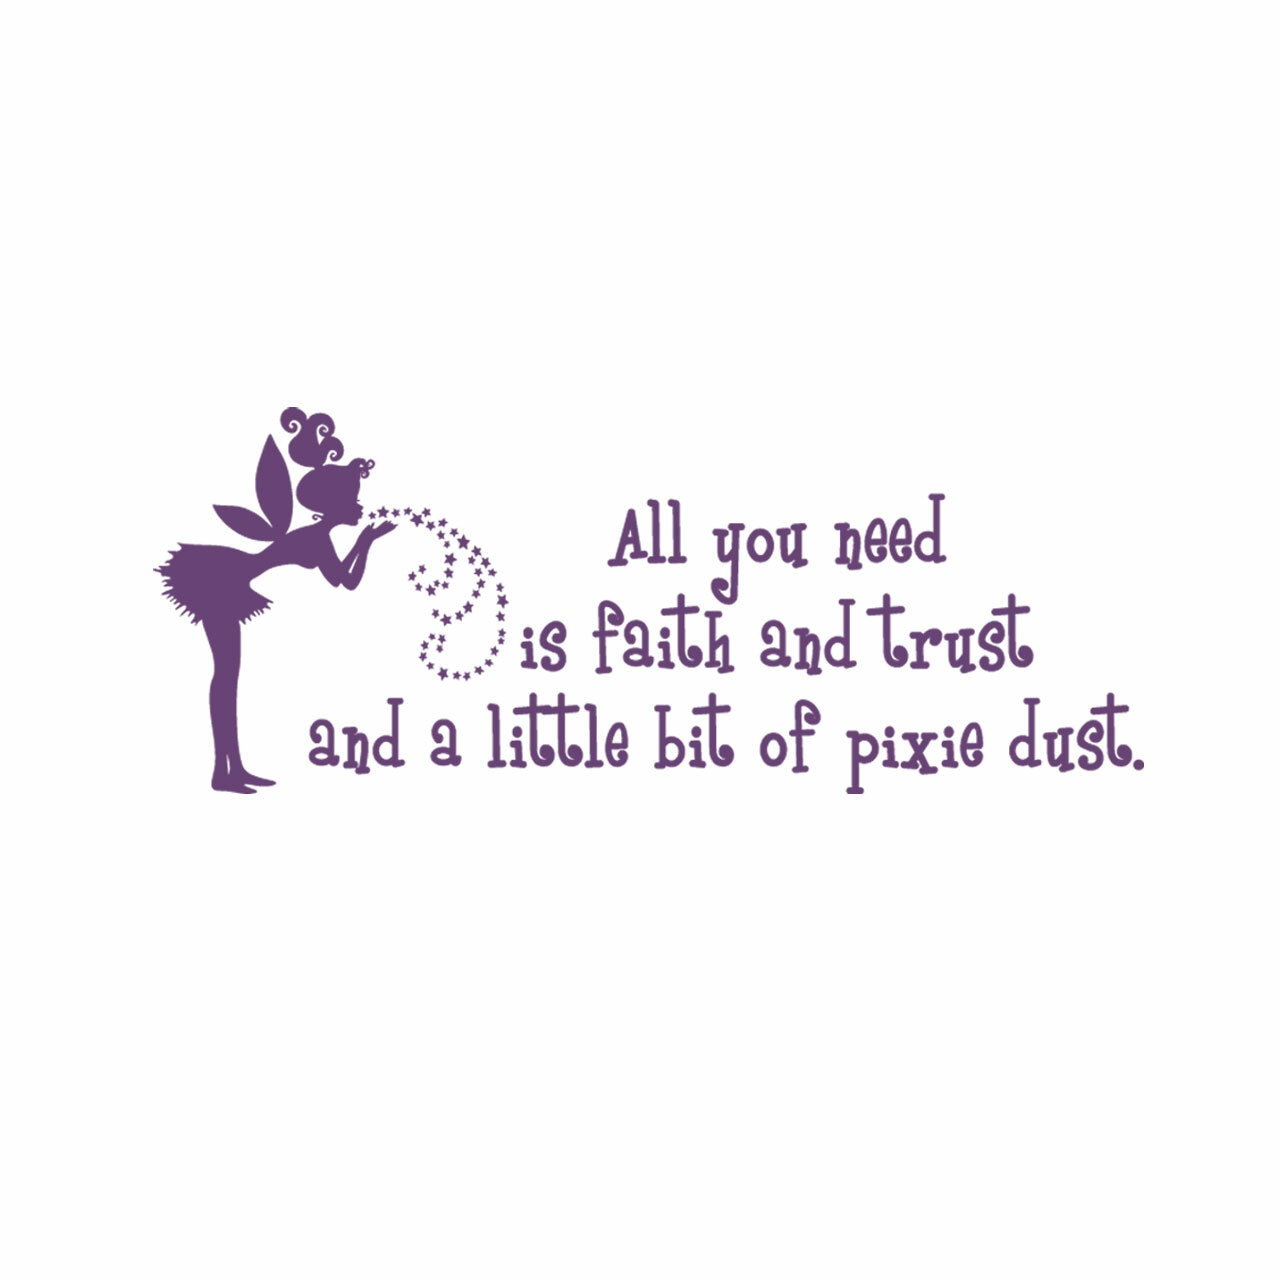 Vinyl layout featuring a fairy and wording about faith trust and pixie dust